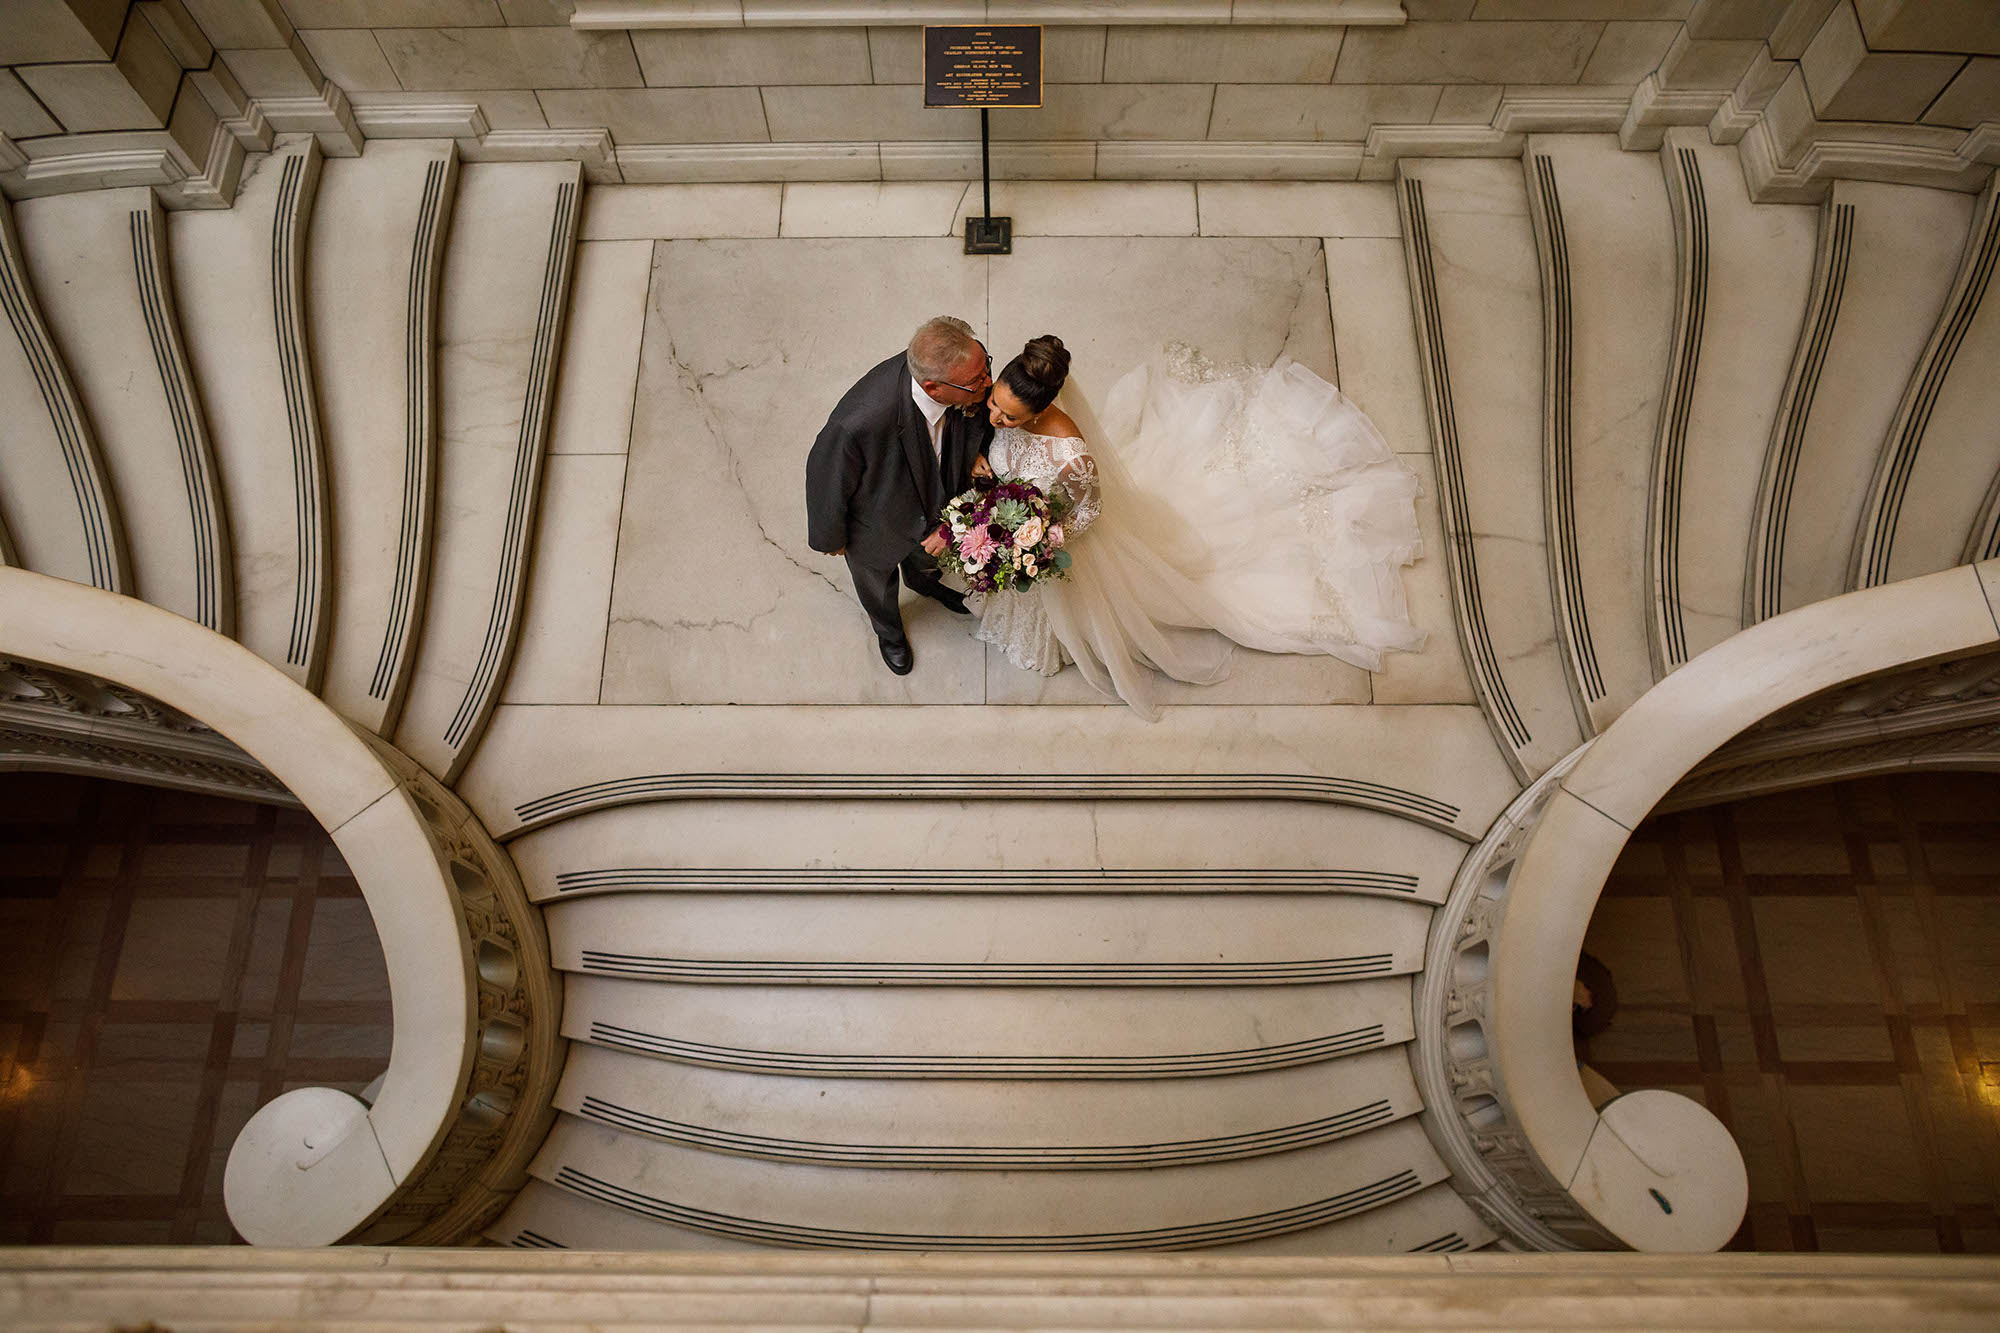 Father of the groom gives his daughter one last kiss on the cheek before walking down the aisle at The Old Courthouse in Downtown Cleveland.